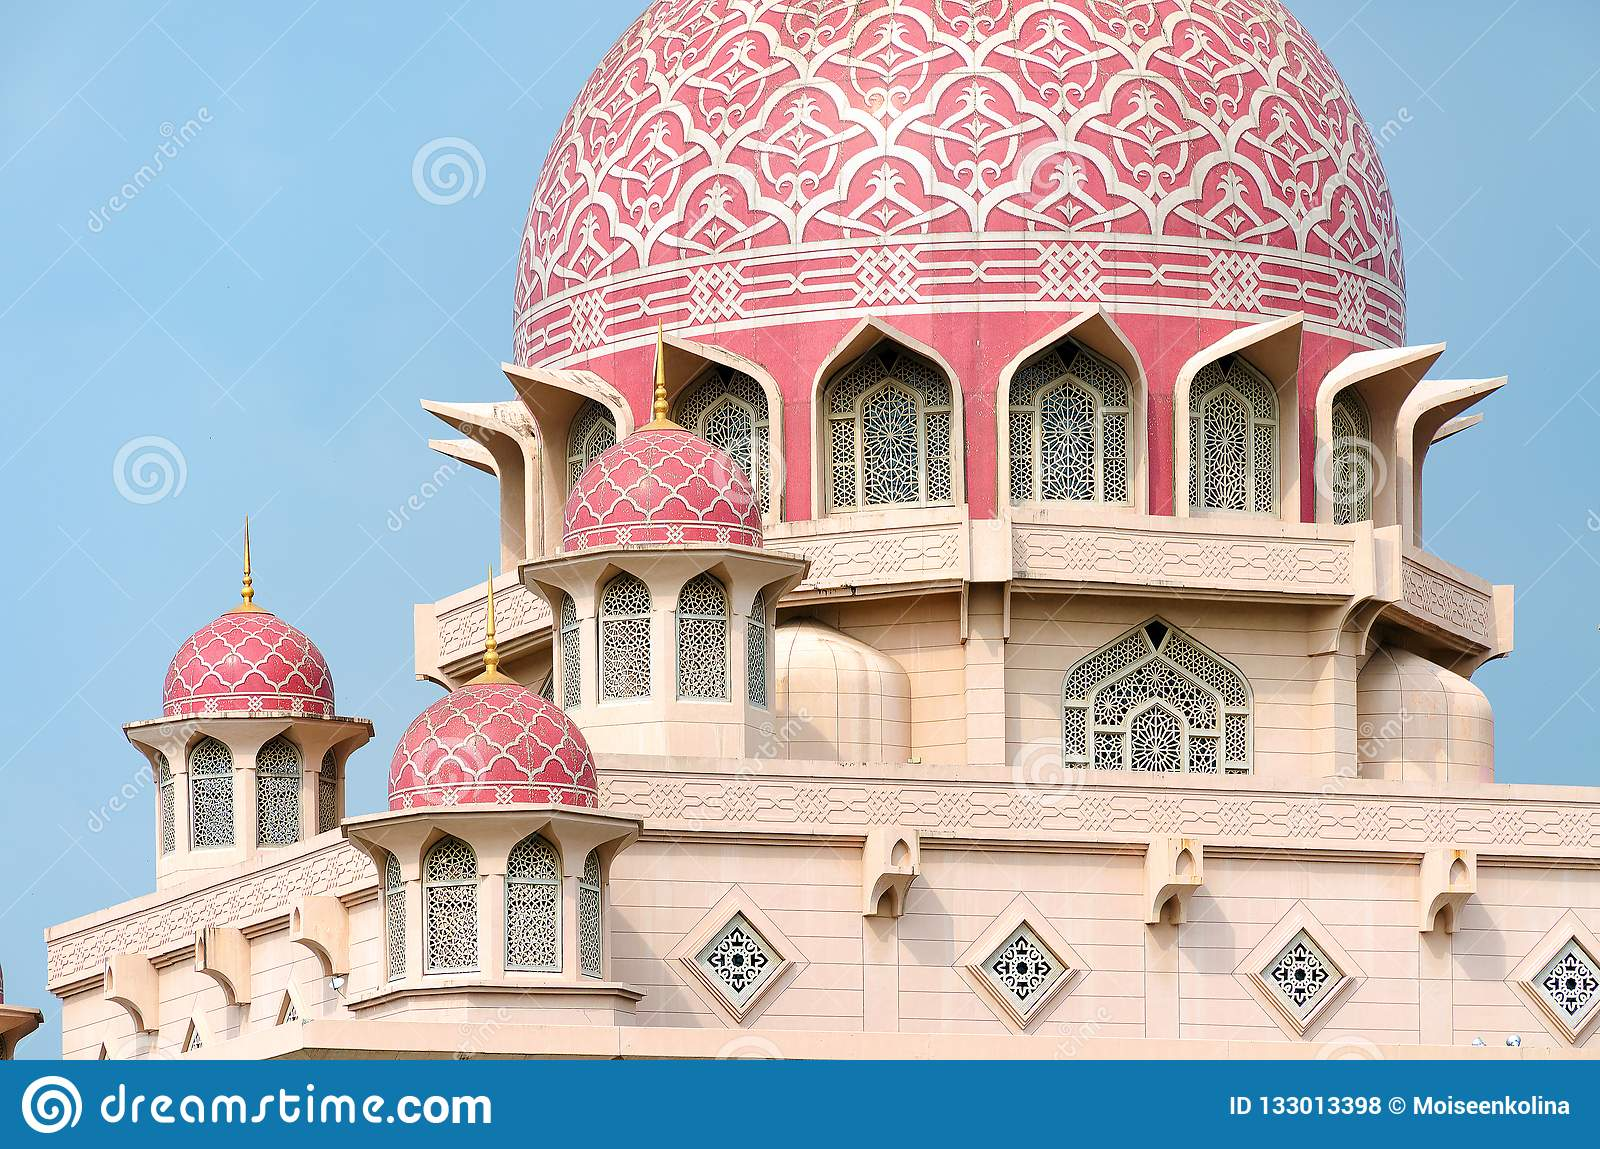 Islamic architecture, details of mosque exterior, dome with decorative pattern